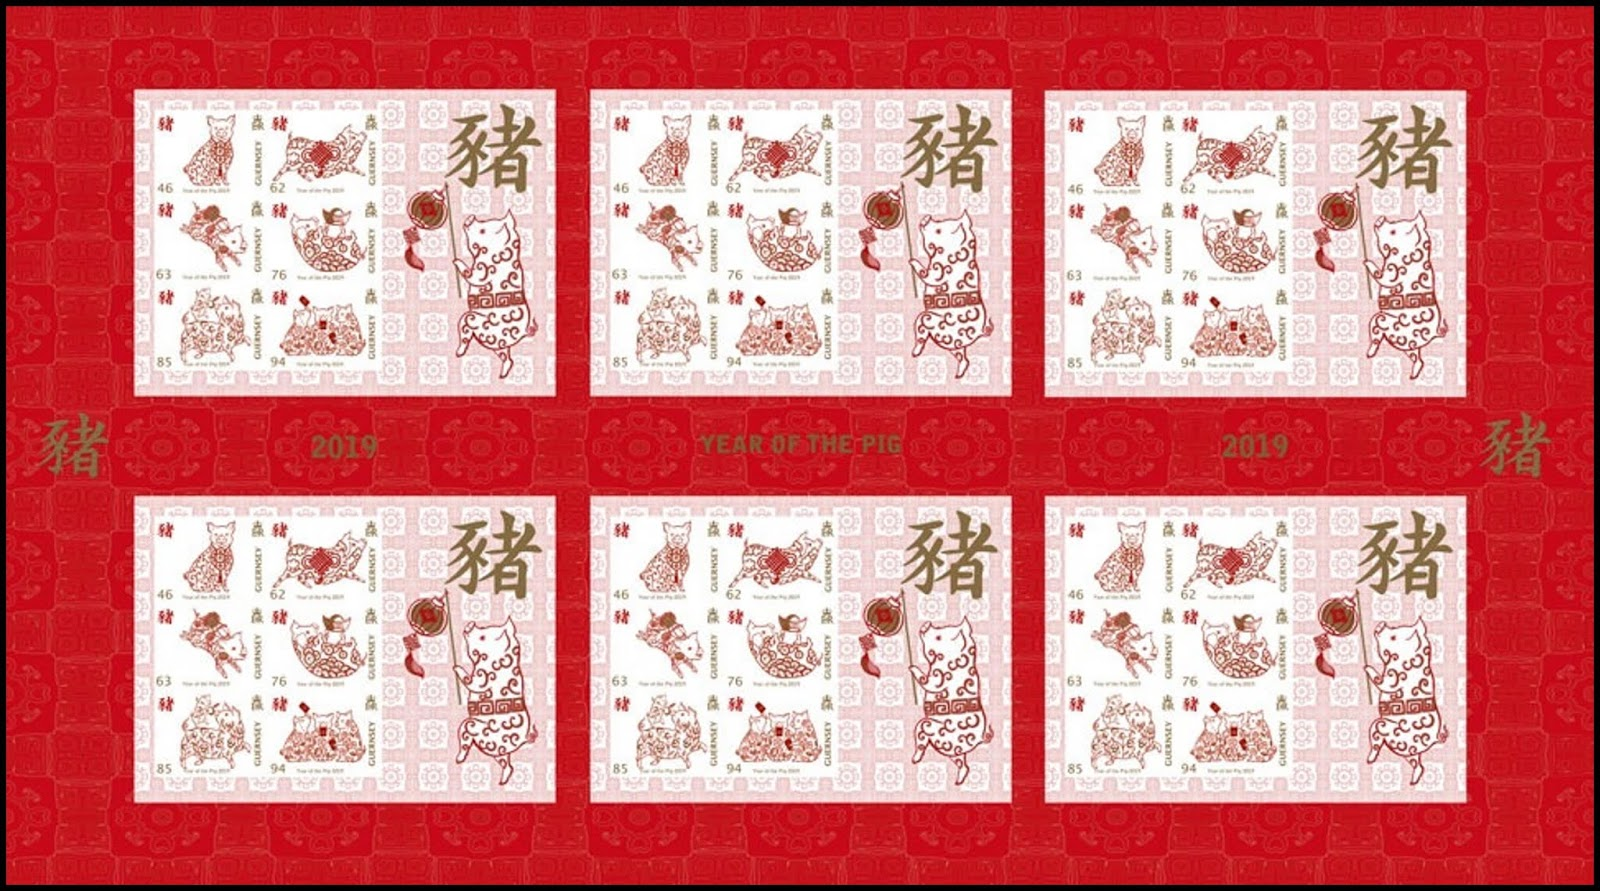 Guernsey - Year of the Pig (January 22, 2019) miniature sheet of 6 (2019)